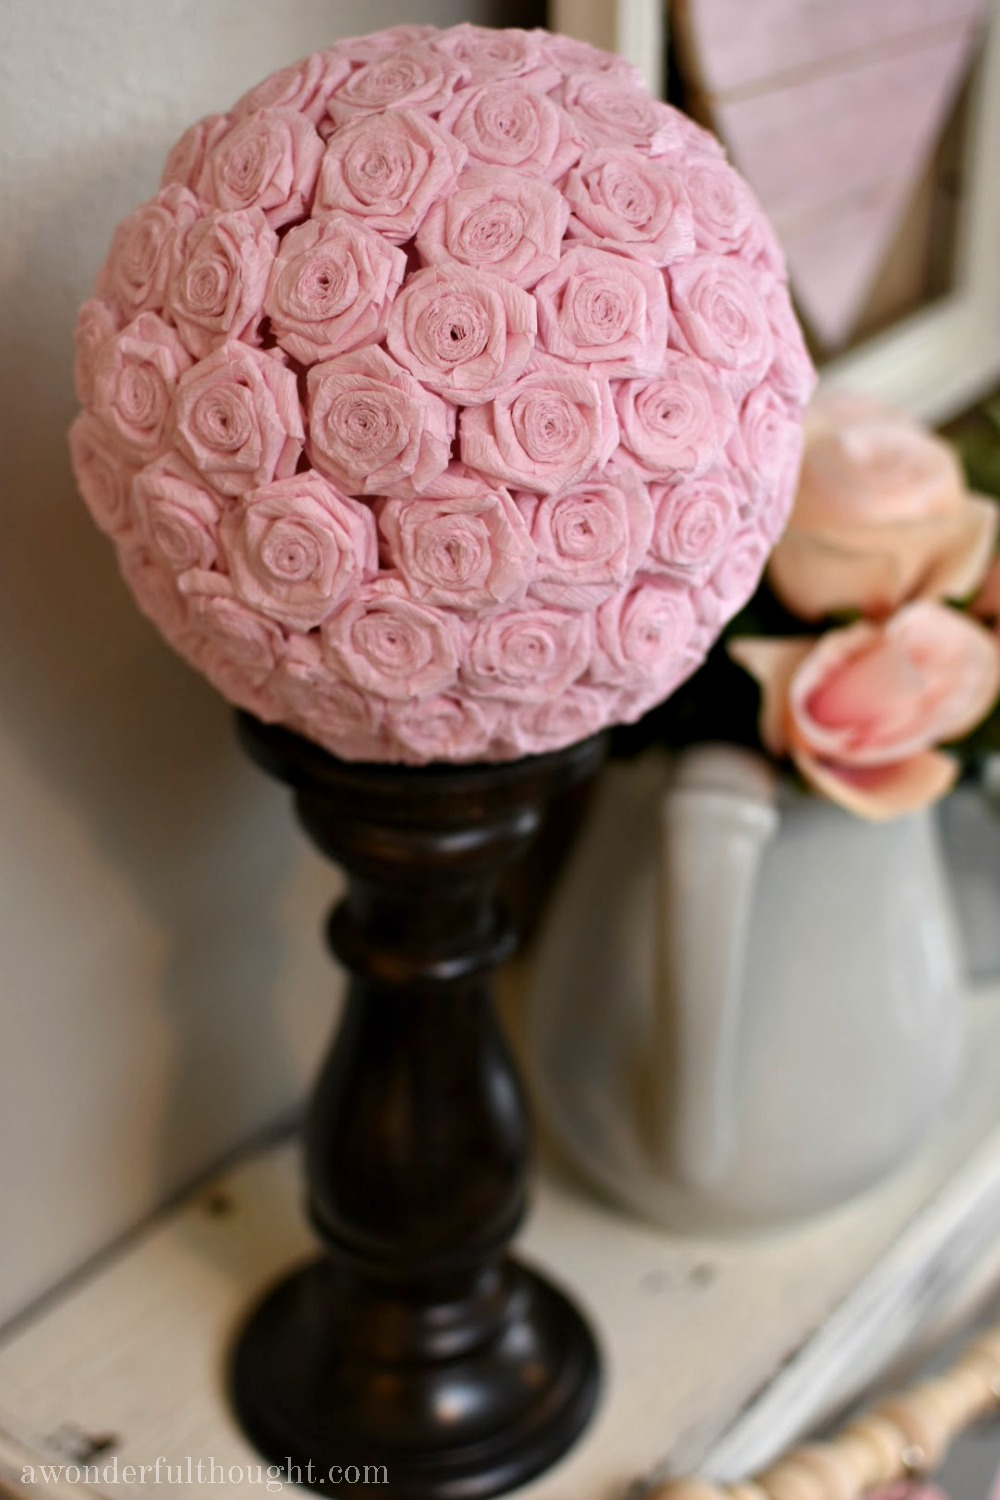 Diy crepe paper flower kissing ball a wonderful thought diy crepe paper flower kissing ball awonderfulthought mightylinksfo